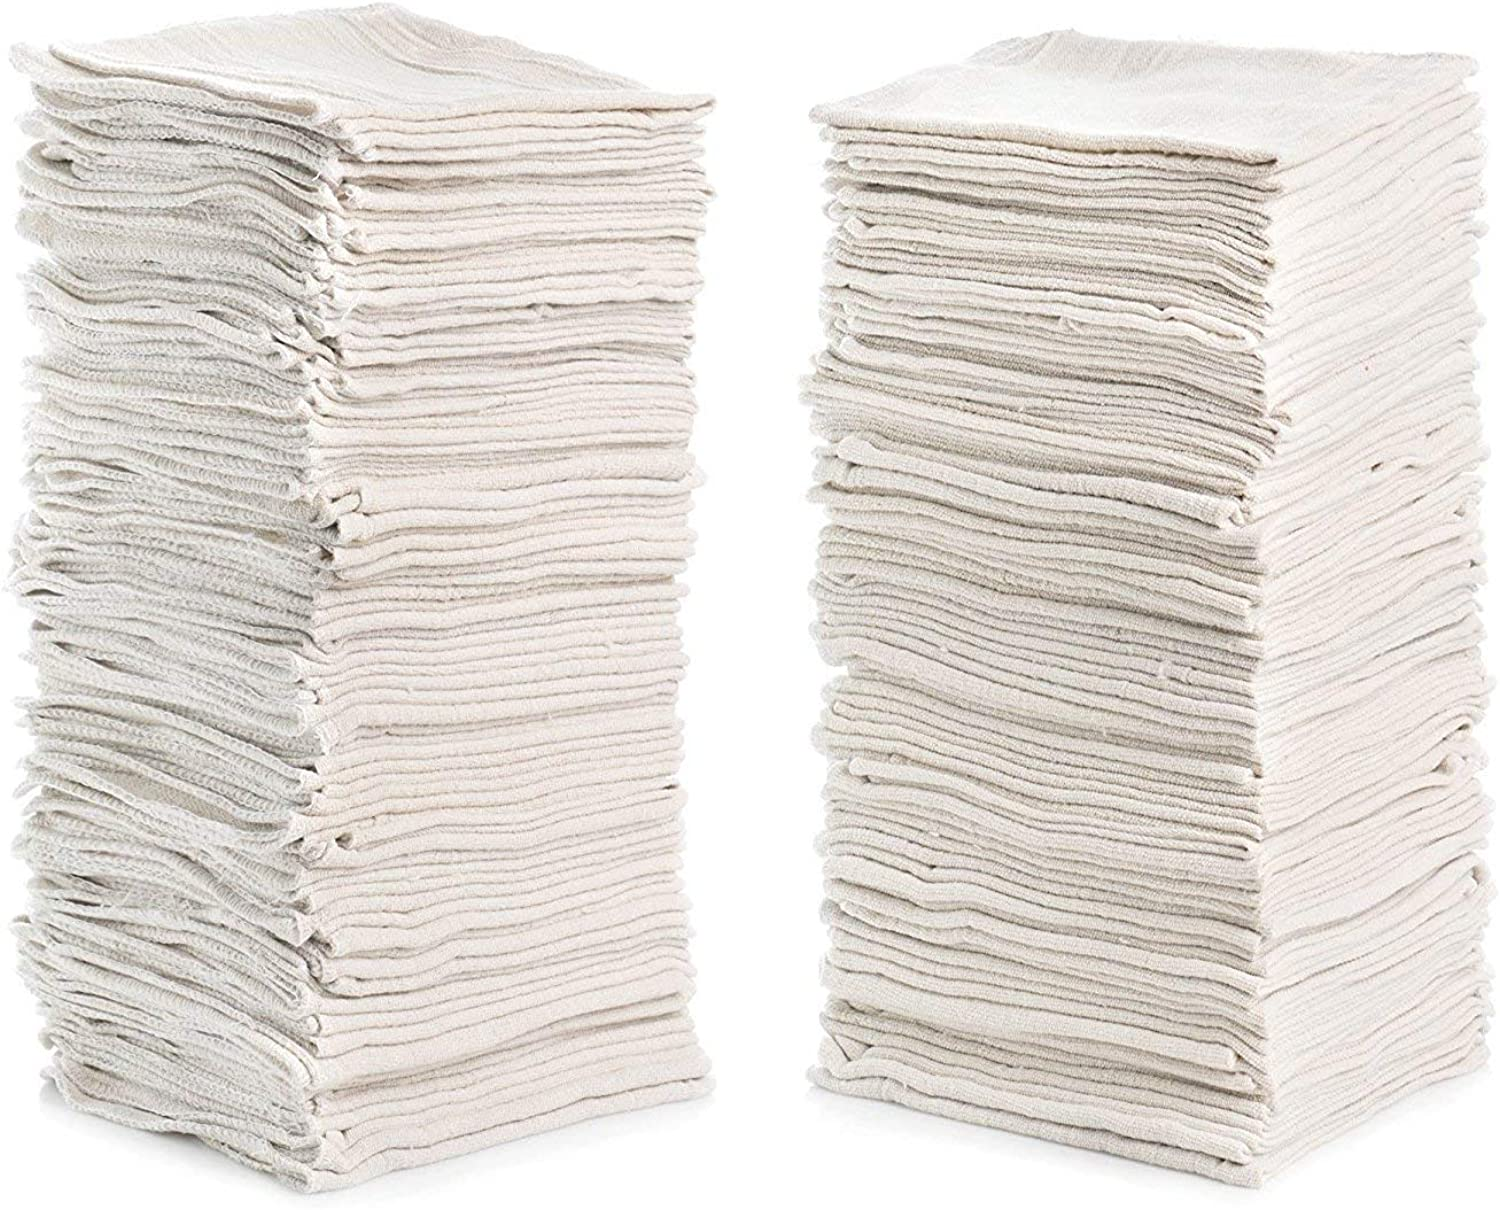 """Simpli-Magic White 500 Pack 500 Pack 79170 Shop Towels Size  14"""" x 12"""" Commercial Grade, 500 Pack"""